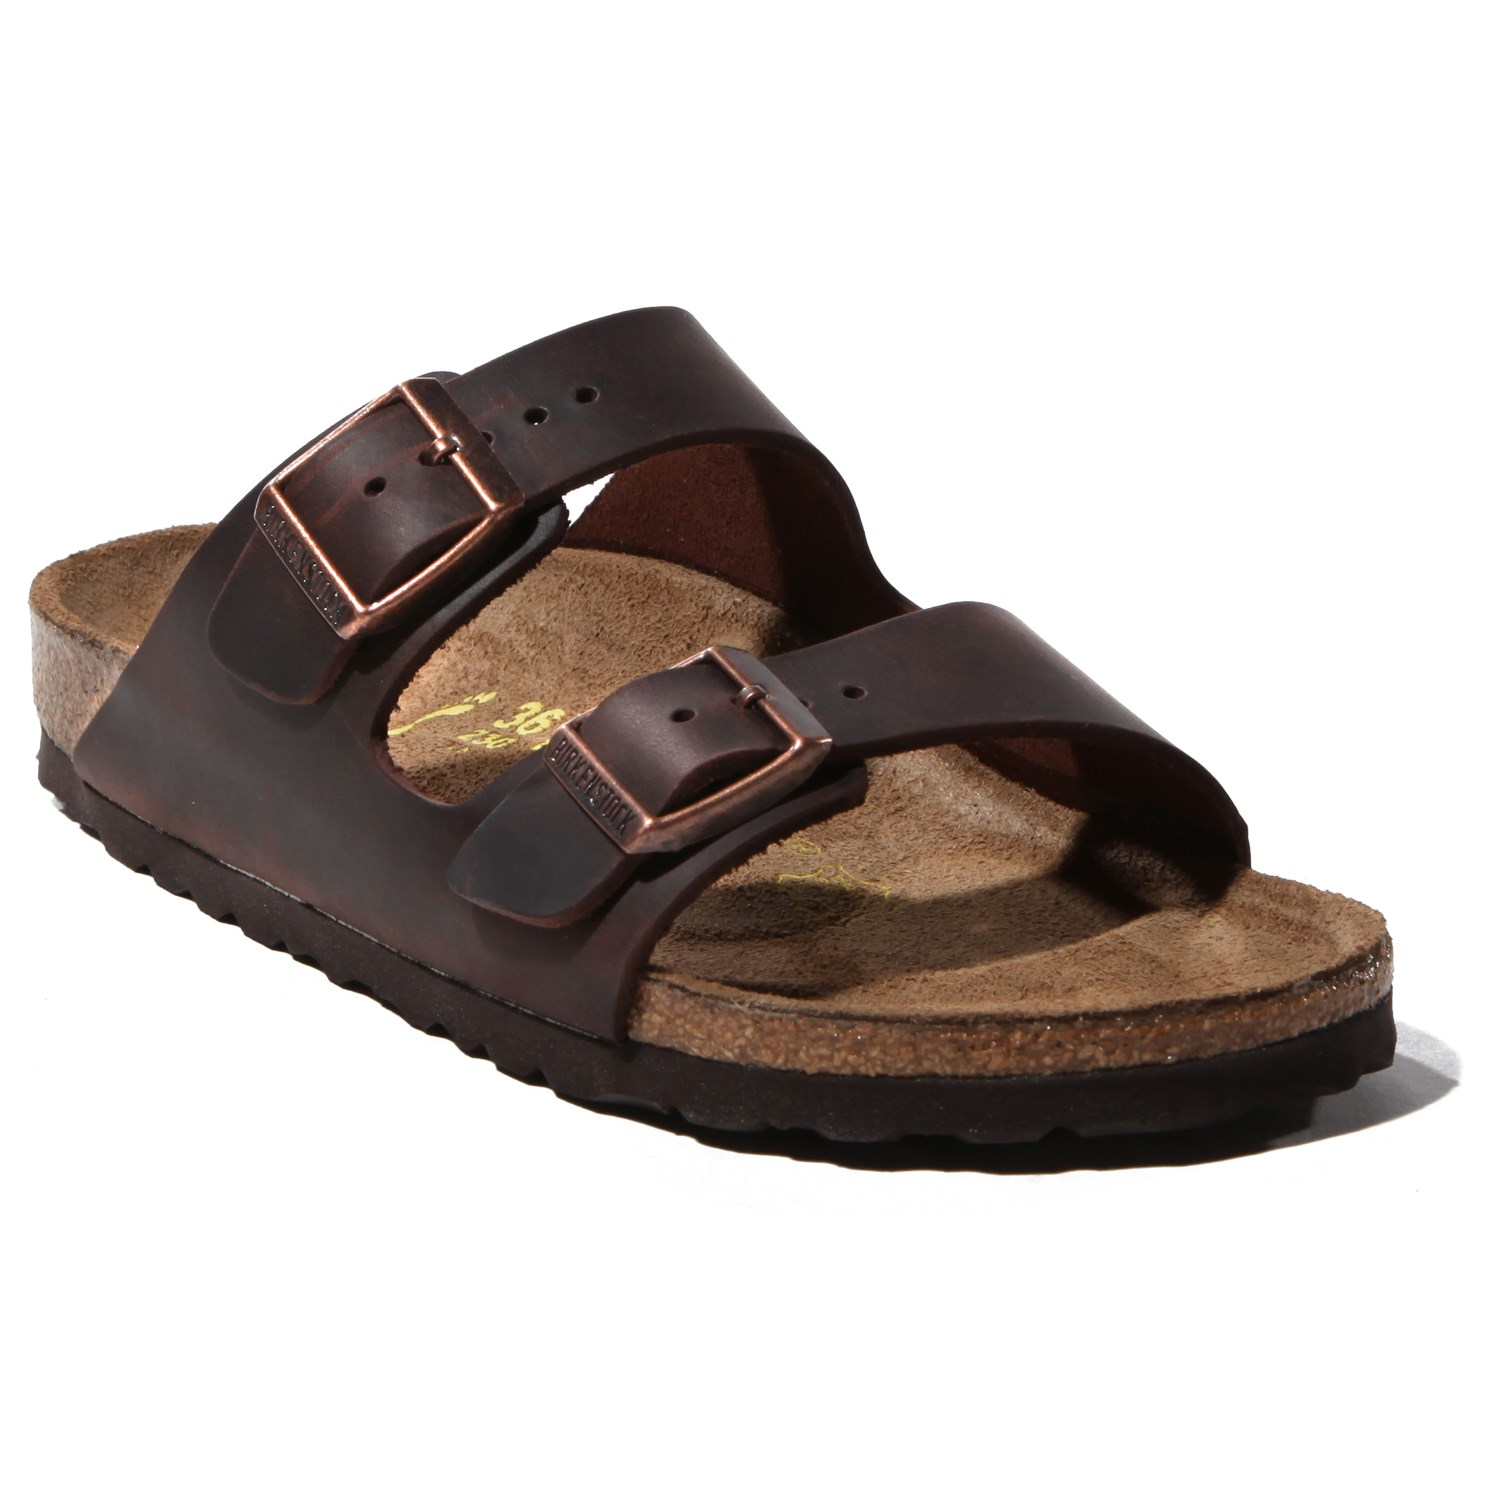 Awesome I Have Been A Birkenstock  Footwear Store For Men, Women And Children But They Also Sell A Great Clothing Range Over 1,600 Items Are Stocked For Men And 23 Of Which Are Footwear Vast Range Of Affordable Formal &amp Casual Shoes,